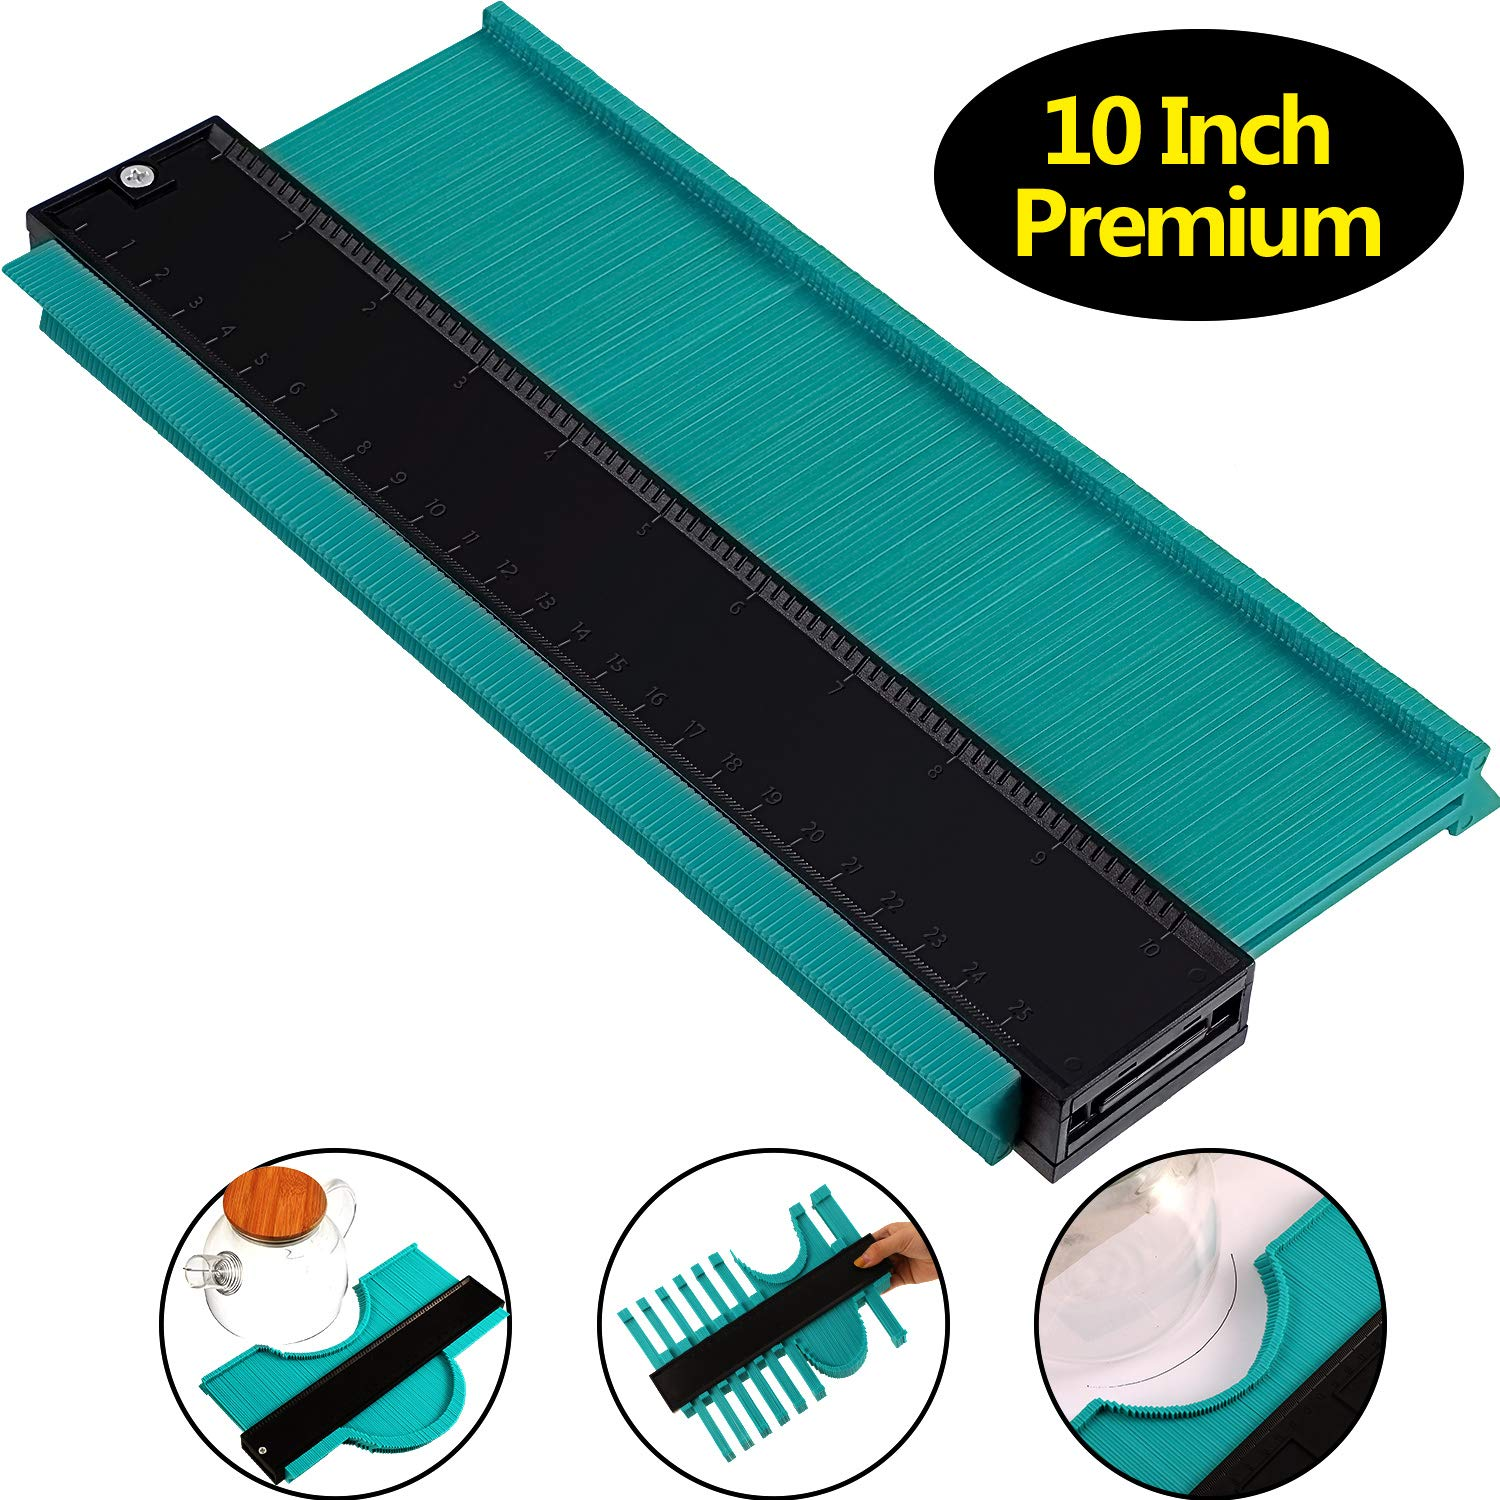 10 Inch Multi-functional Contour Gauge Plastic Profile Gauge Multifunctional Shape Duplicator Edge Shaping Measure Ruler for Professional Precise Measurement (3 cm Wider, Green) by Norme